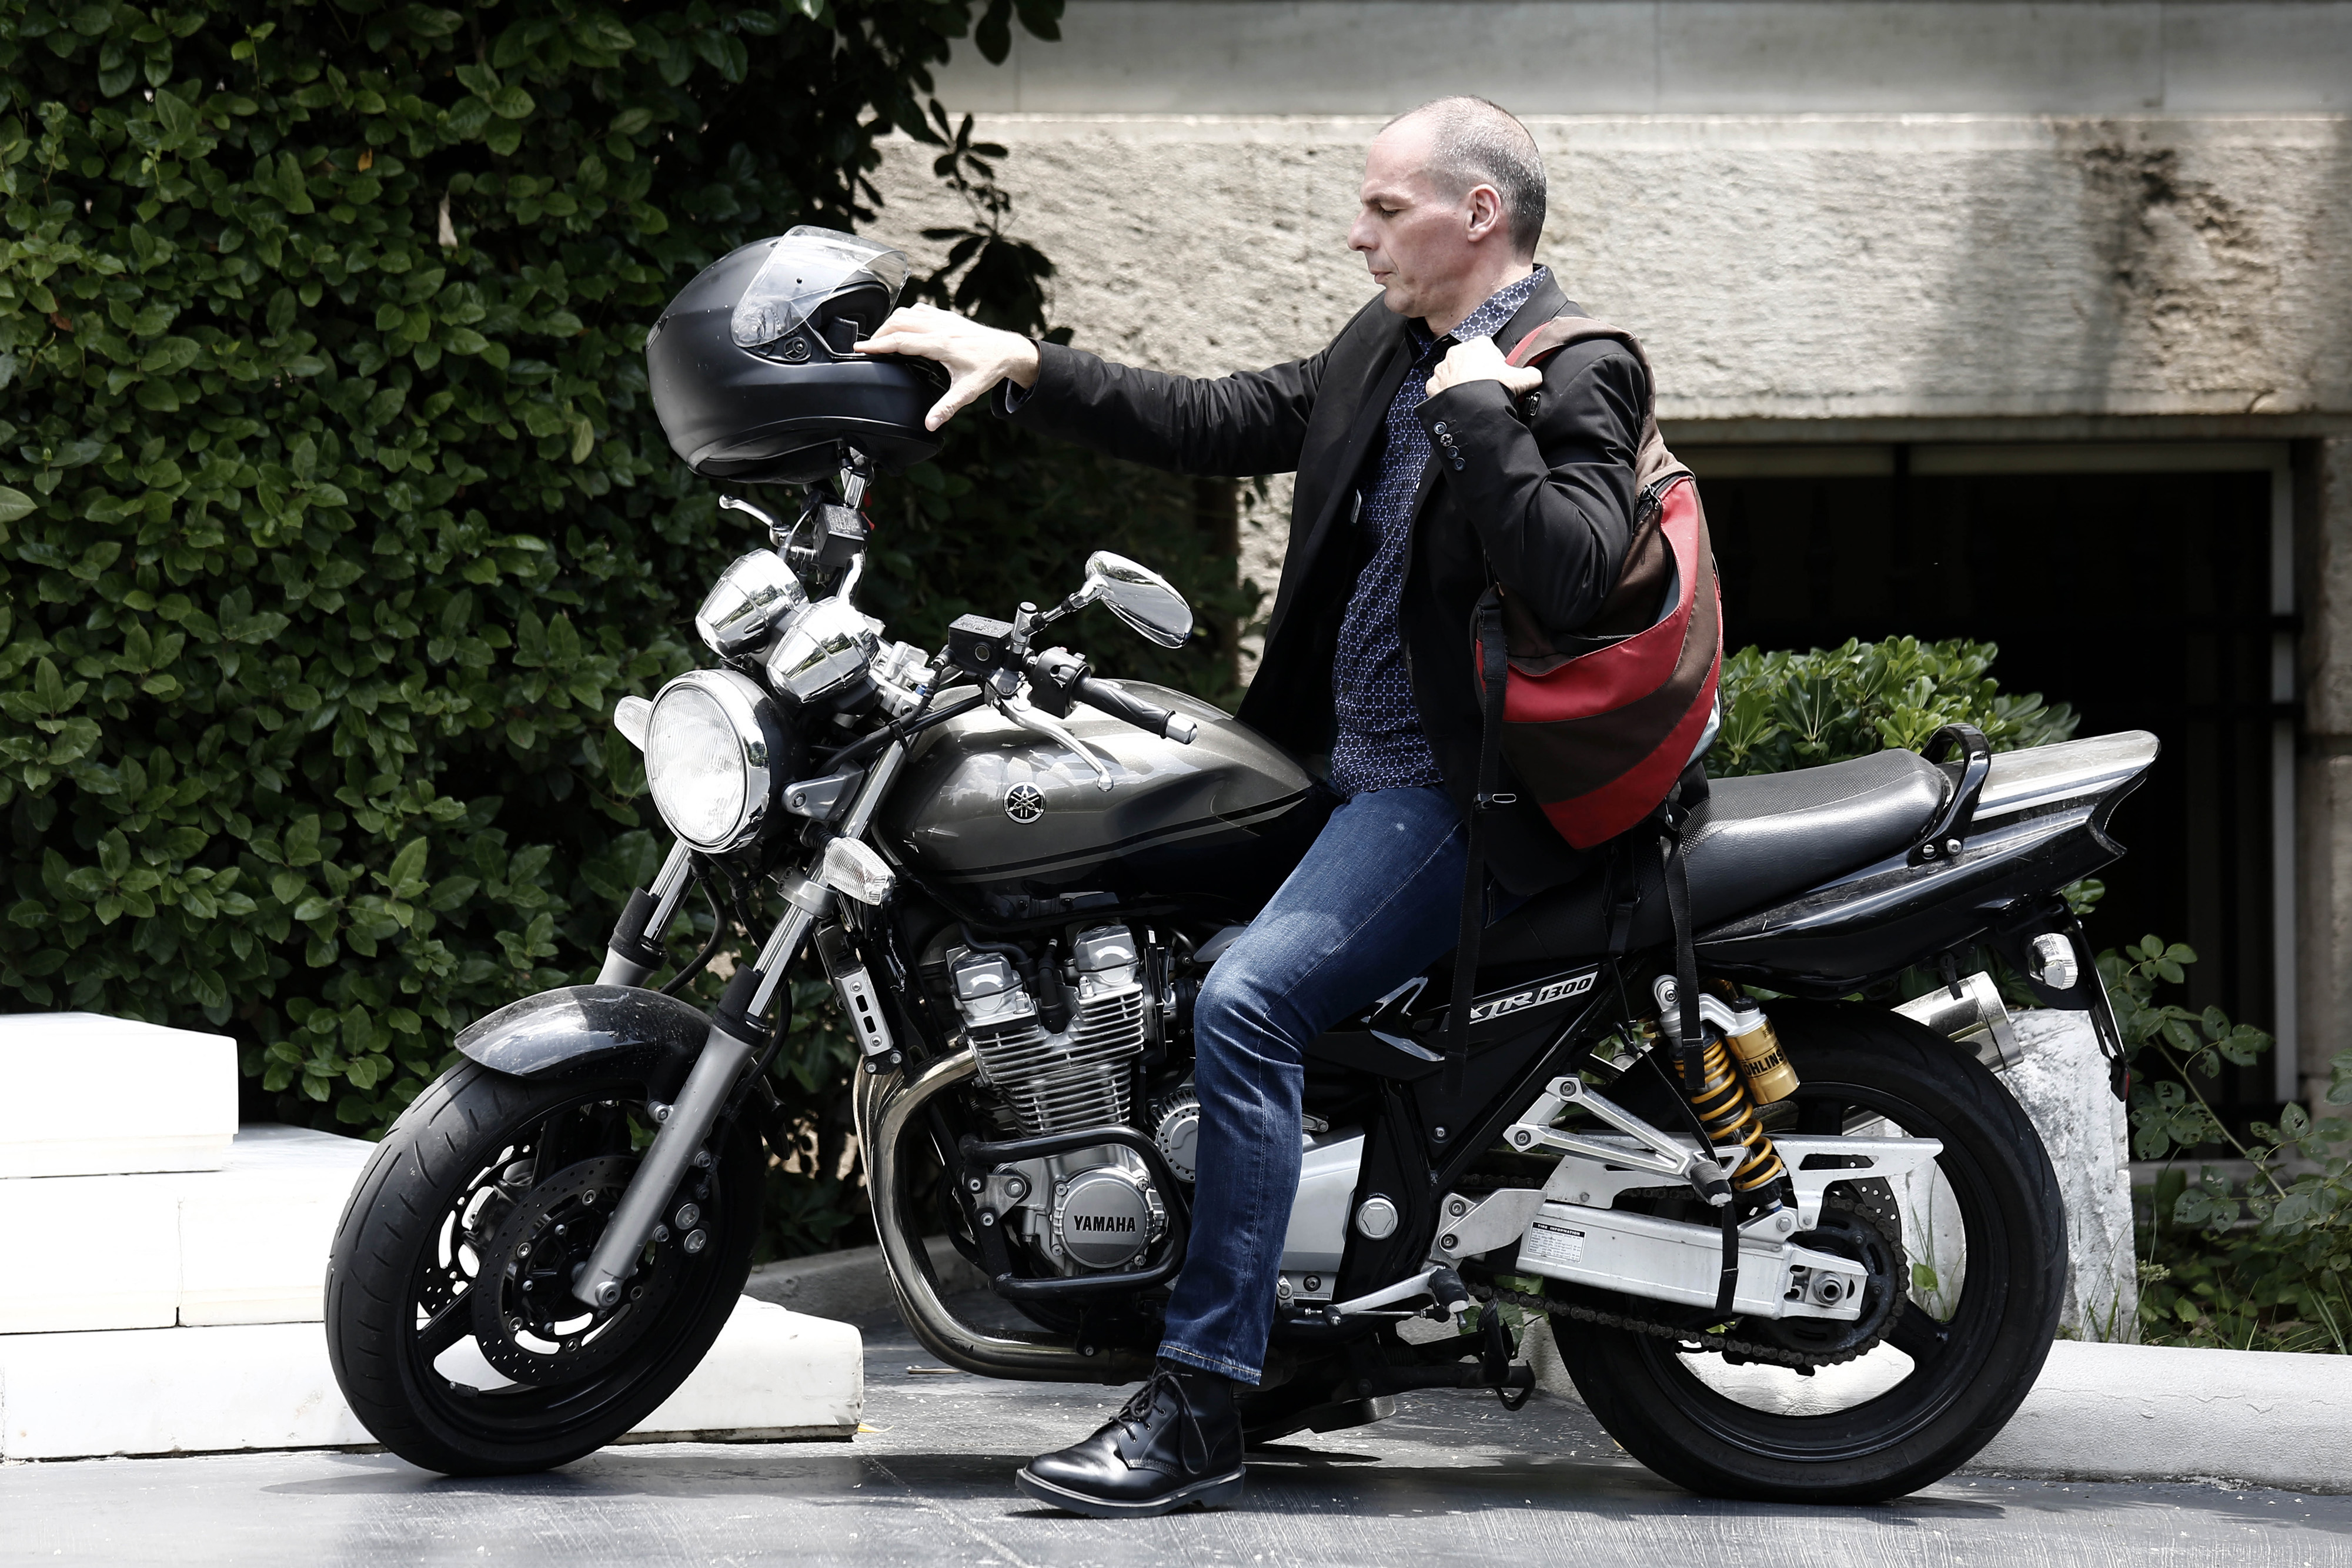 Yanis Varoufakis, Greece's finance minister, arrives on a motorbike for a government meeting at Maximos Mansion in Athens, Greece, on Sunday, June 28, 2015. Greek bank executives and European officials are warning of an imminent cash crunch or bank shutdown after talks on a new aid package collapsed. Photographer: Kostas Tsironis/Bloomberg *** Local Caption *** Yanis Varoufakis